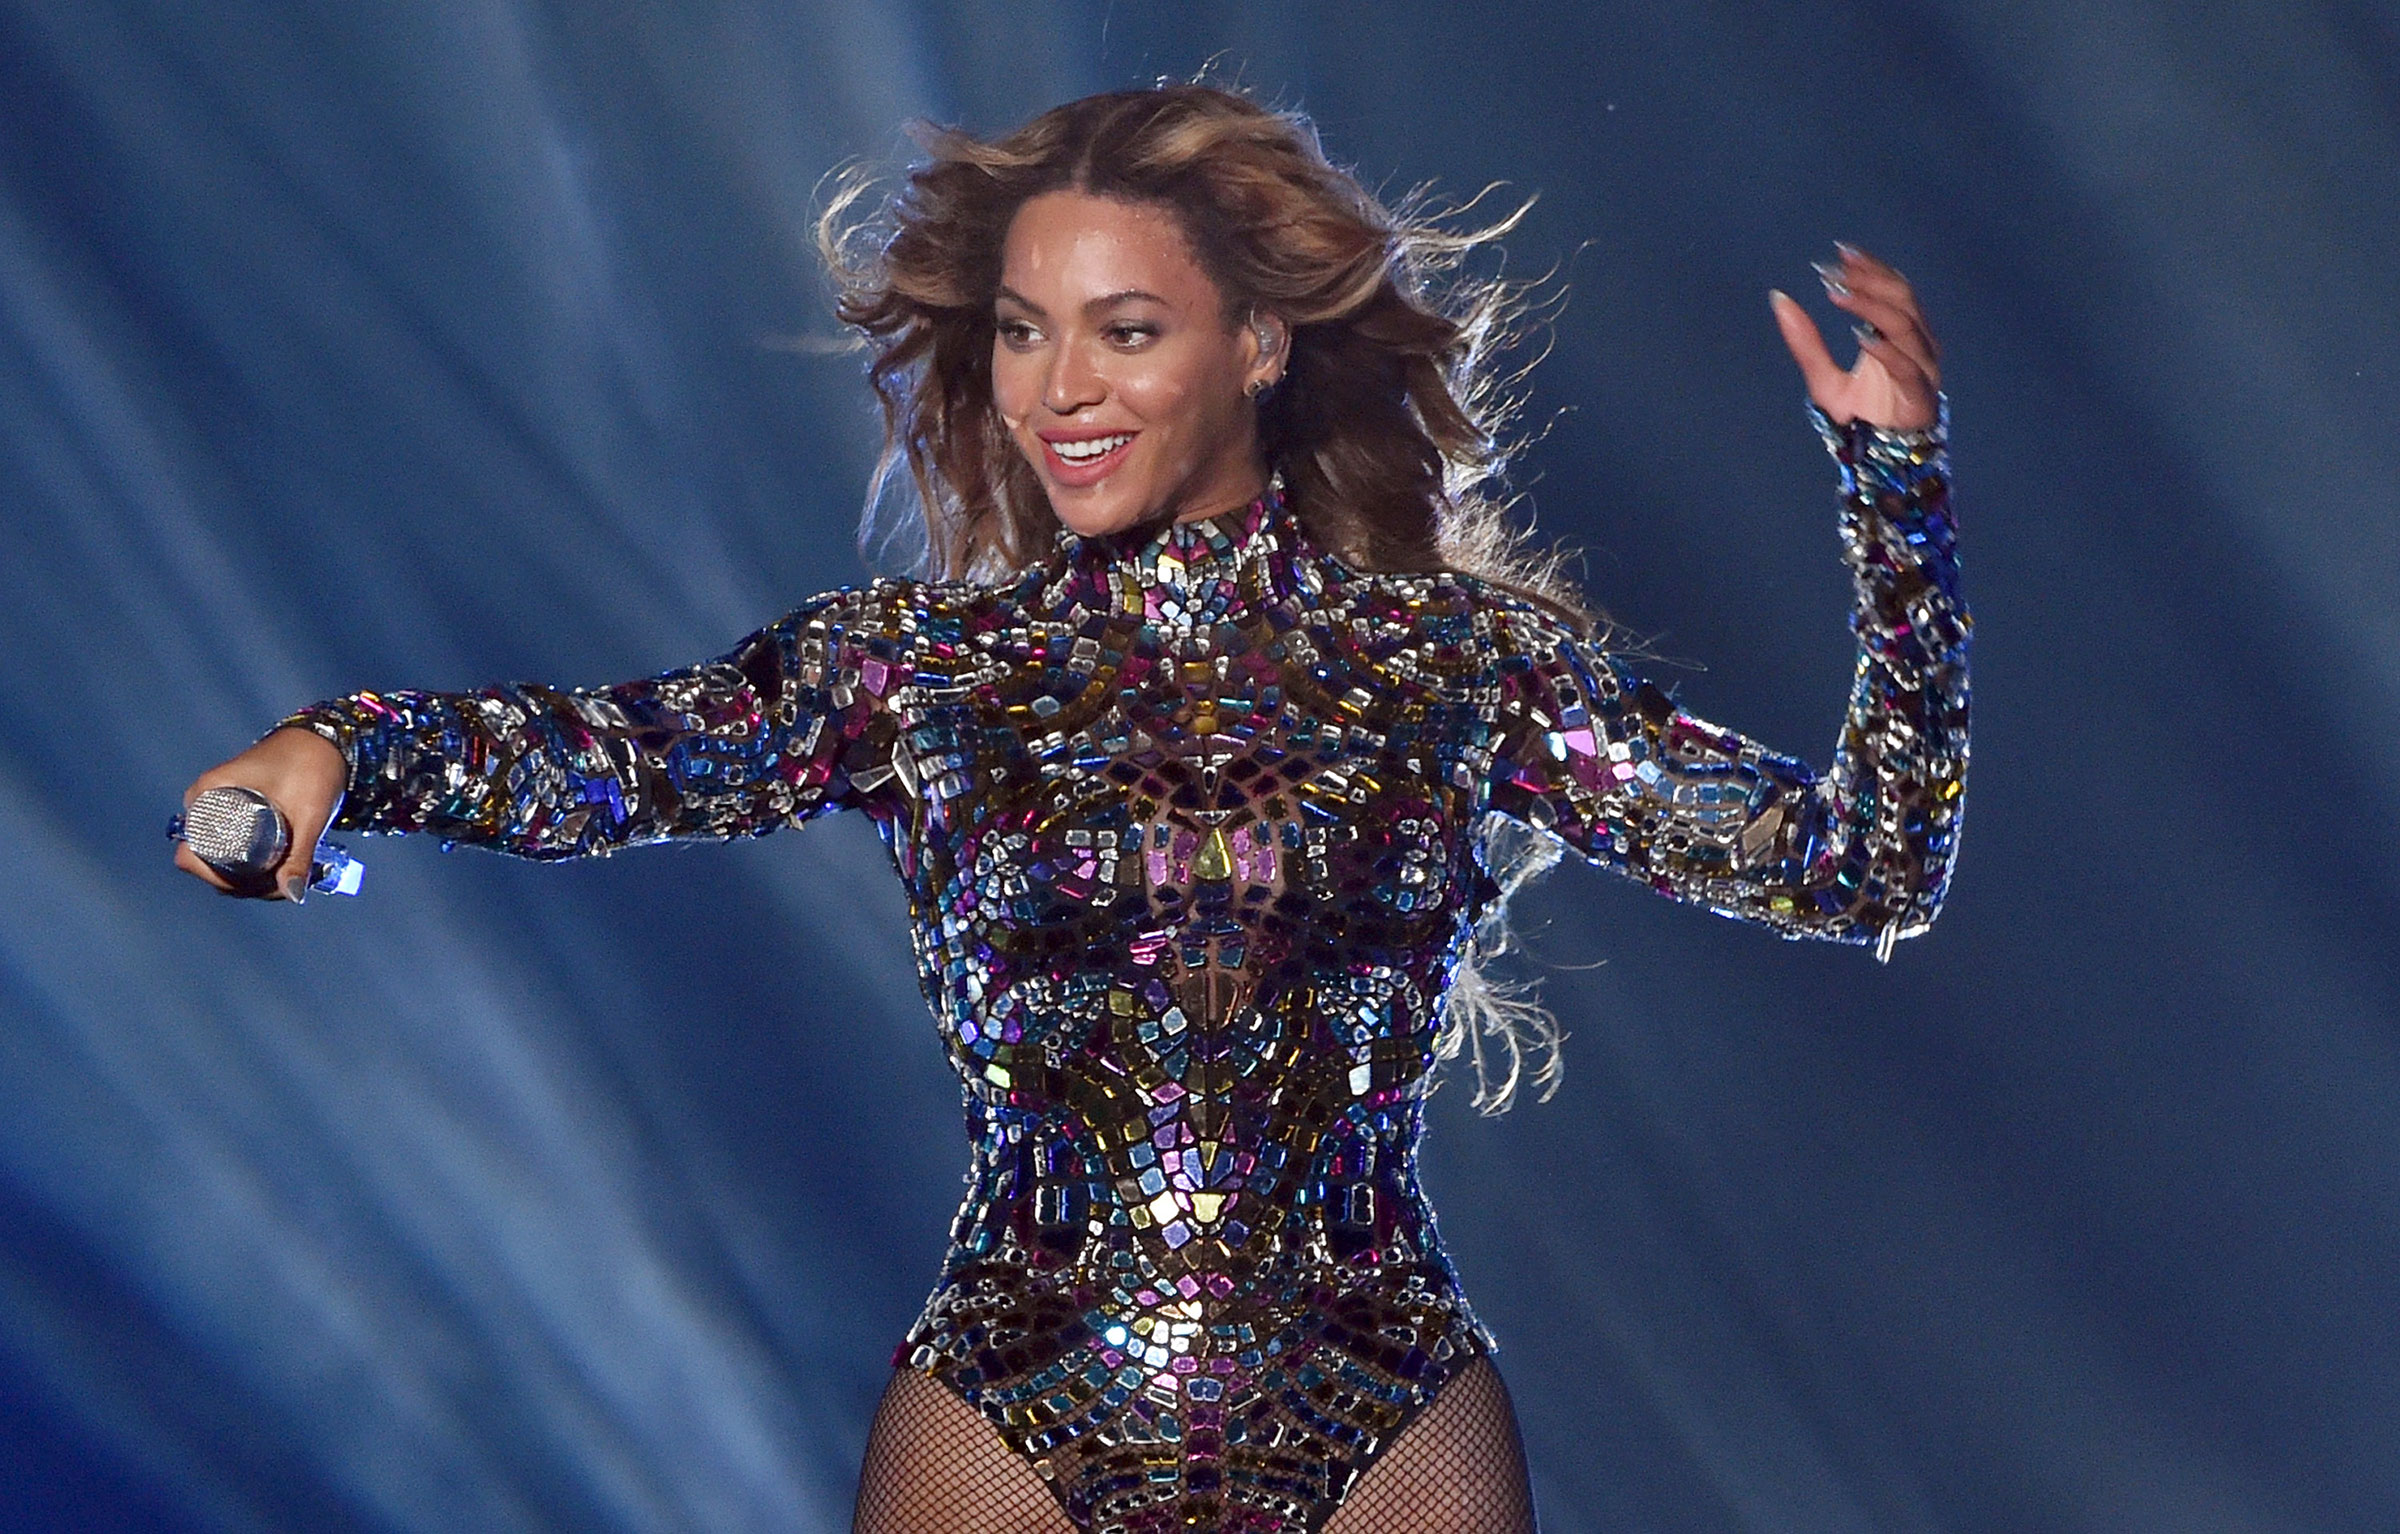 Knowles-Carter performs at the 2014 MTV Video Music Awards.